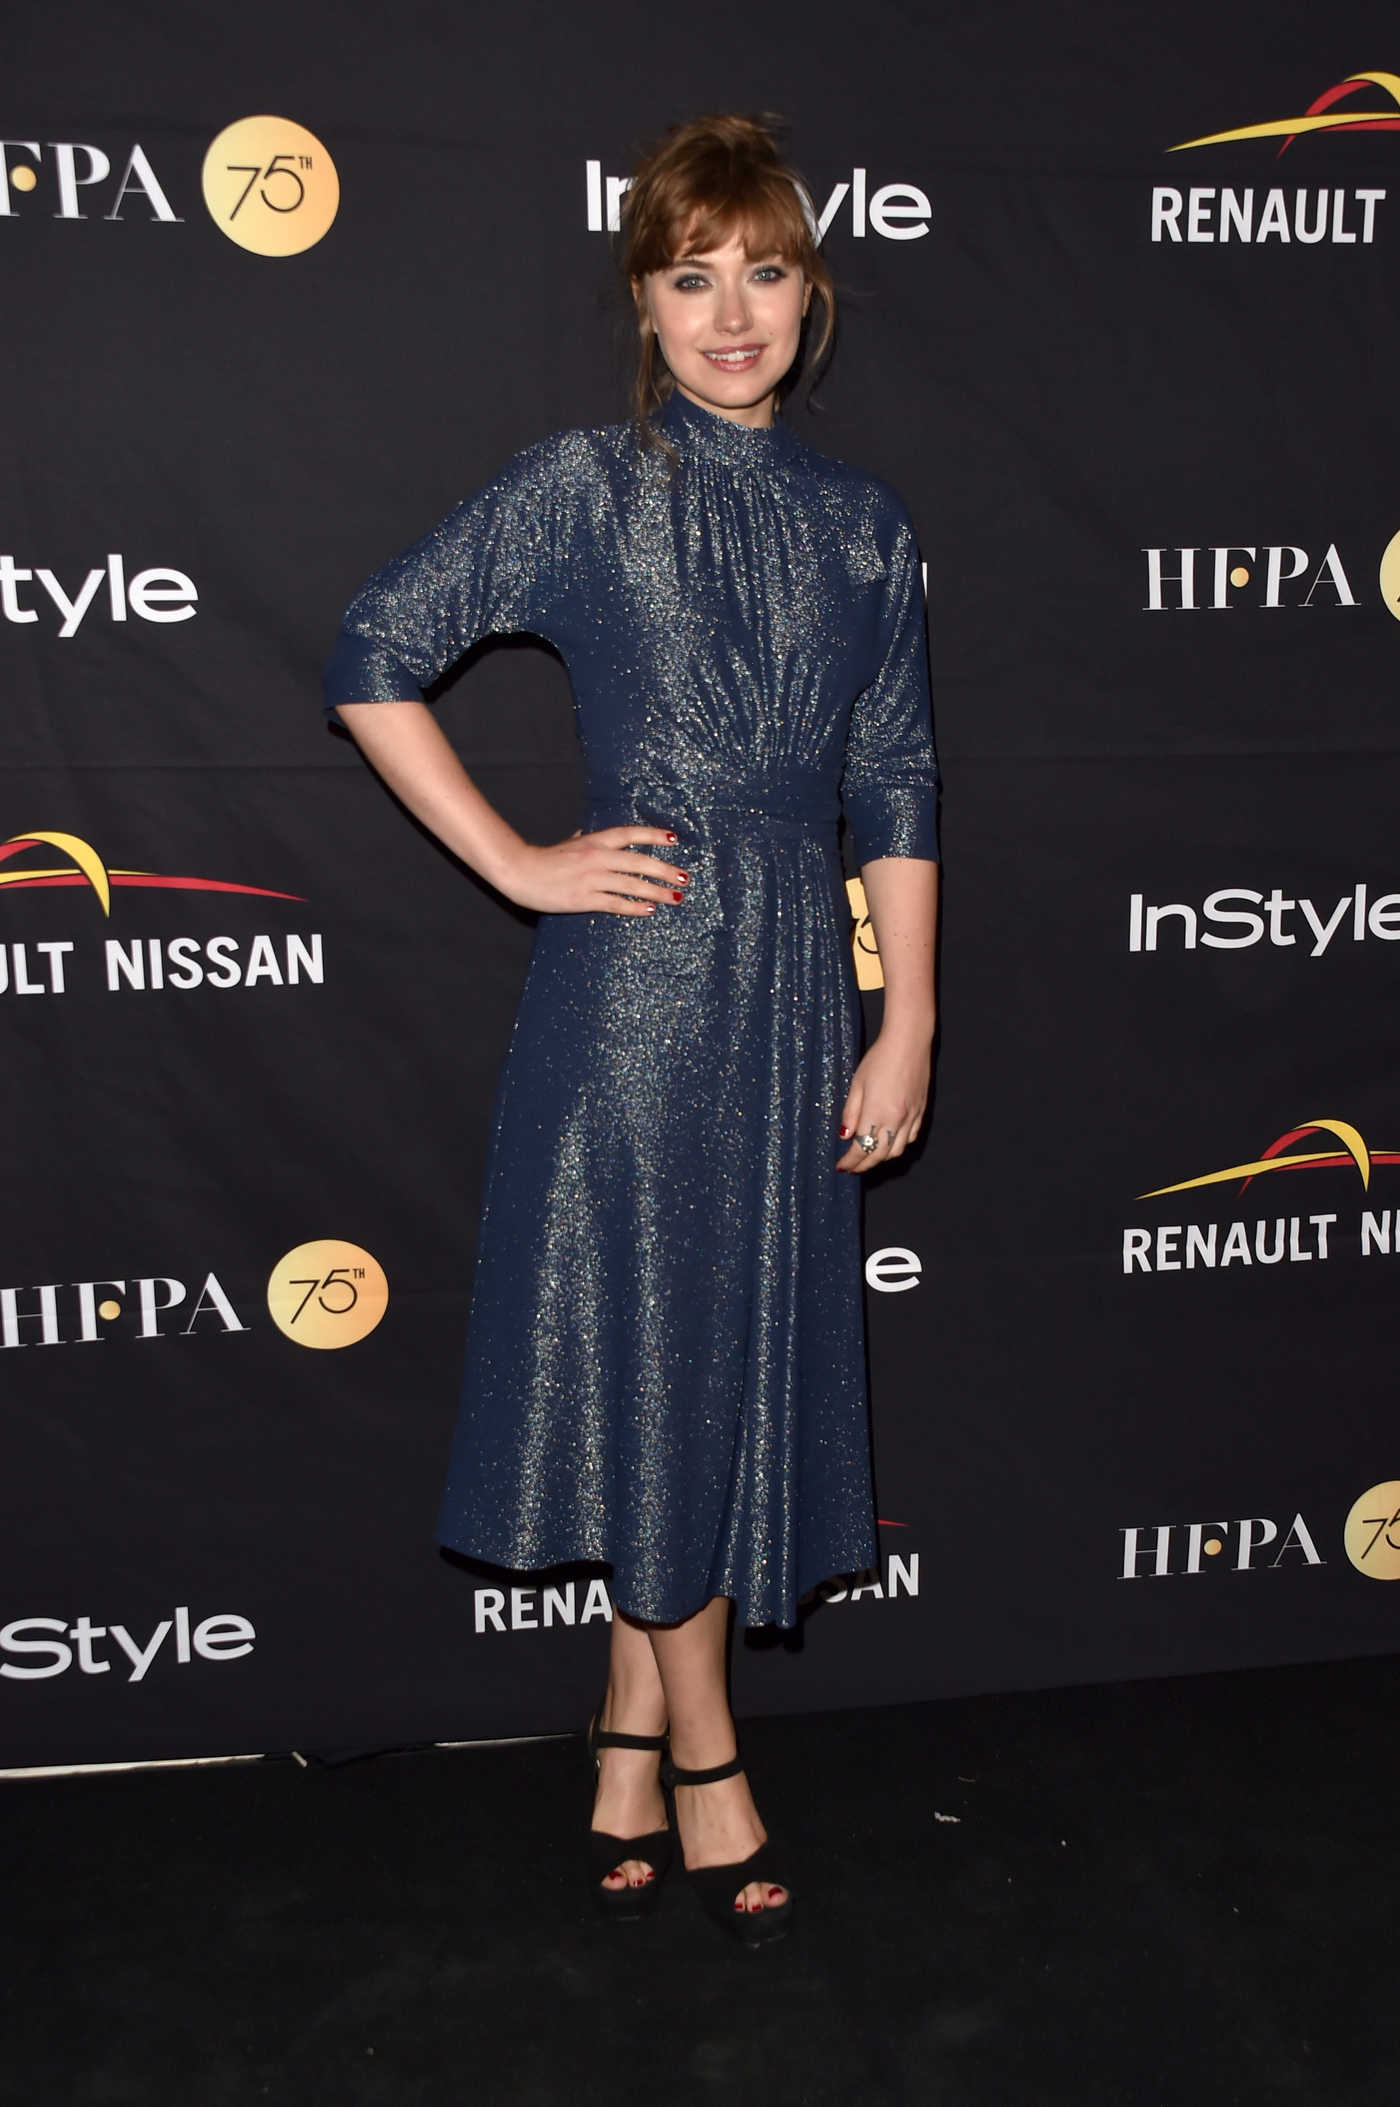 Imogen Poots at HFPA and InStyle Annual Celebration During Toronto International Film Festival 09/09/2017